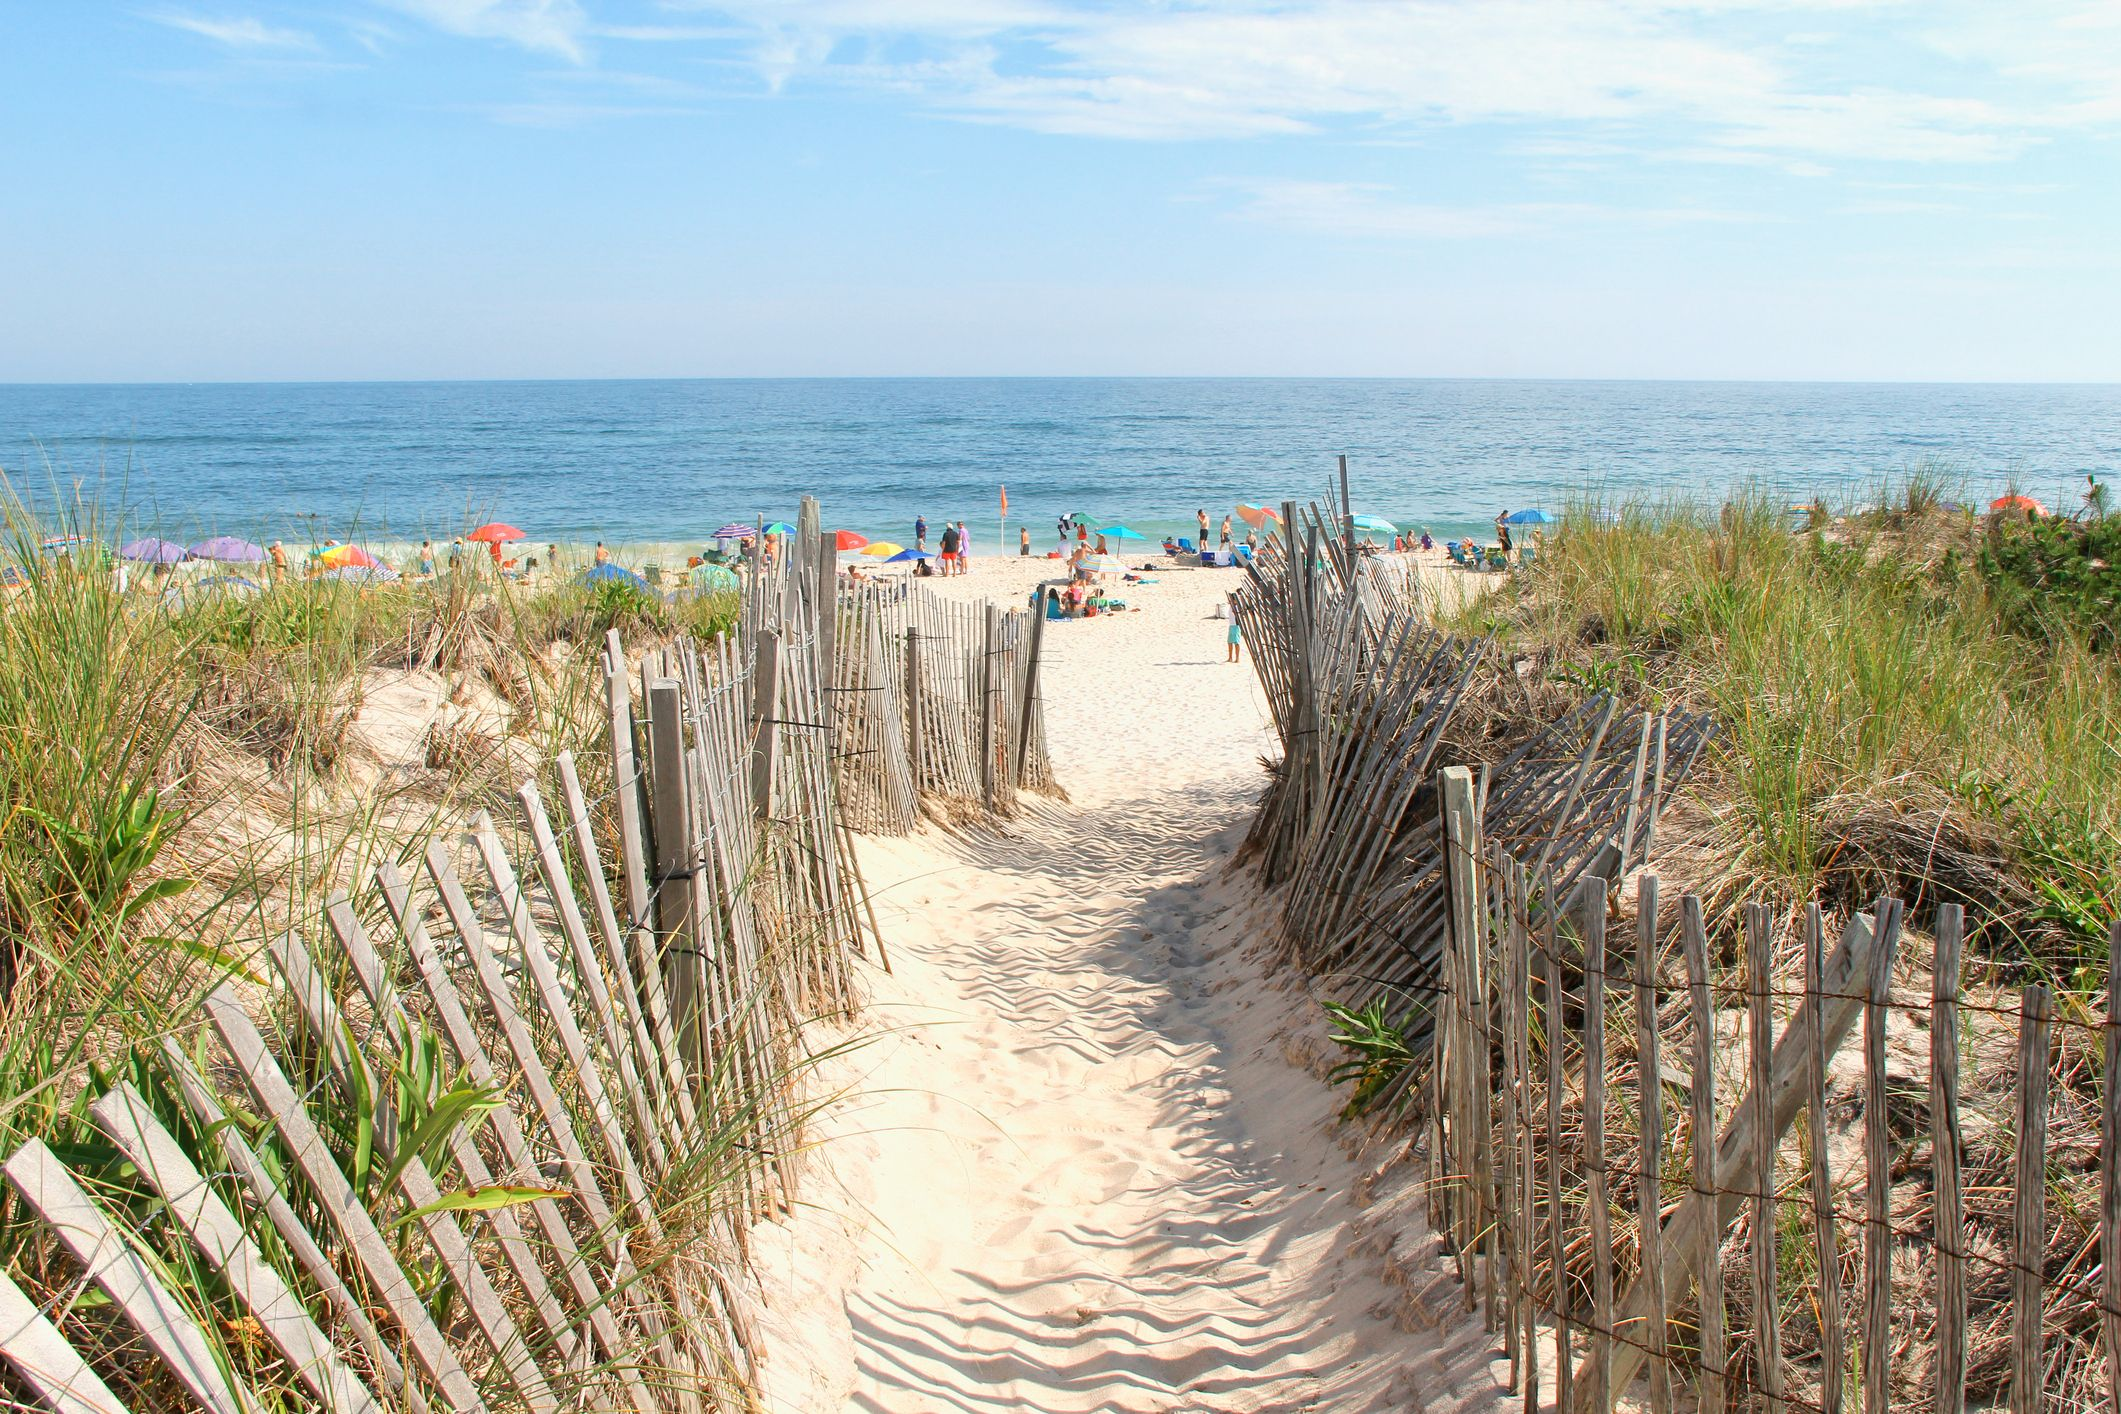 The Top 15 Beaches on the East Coast